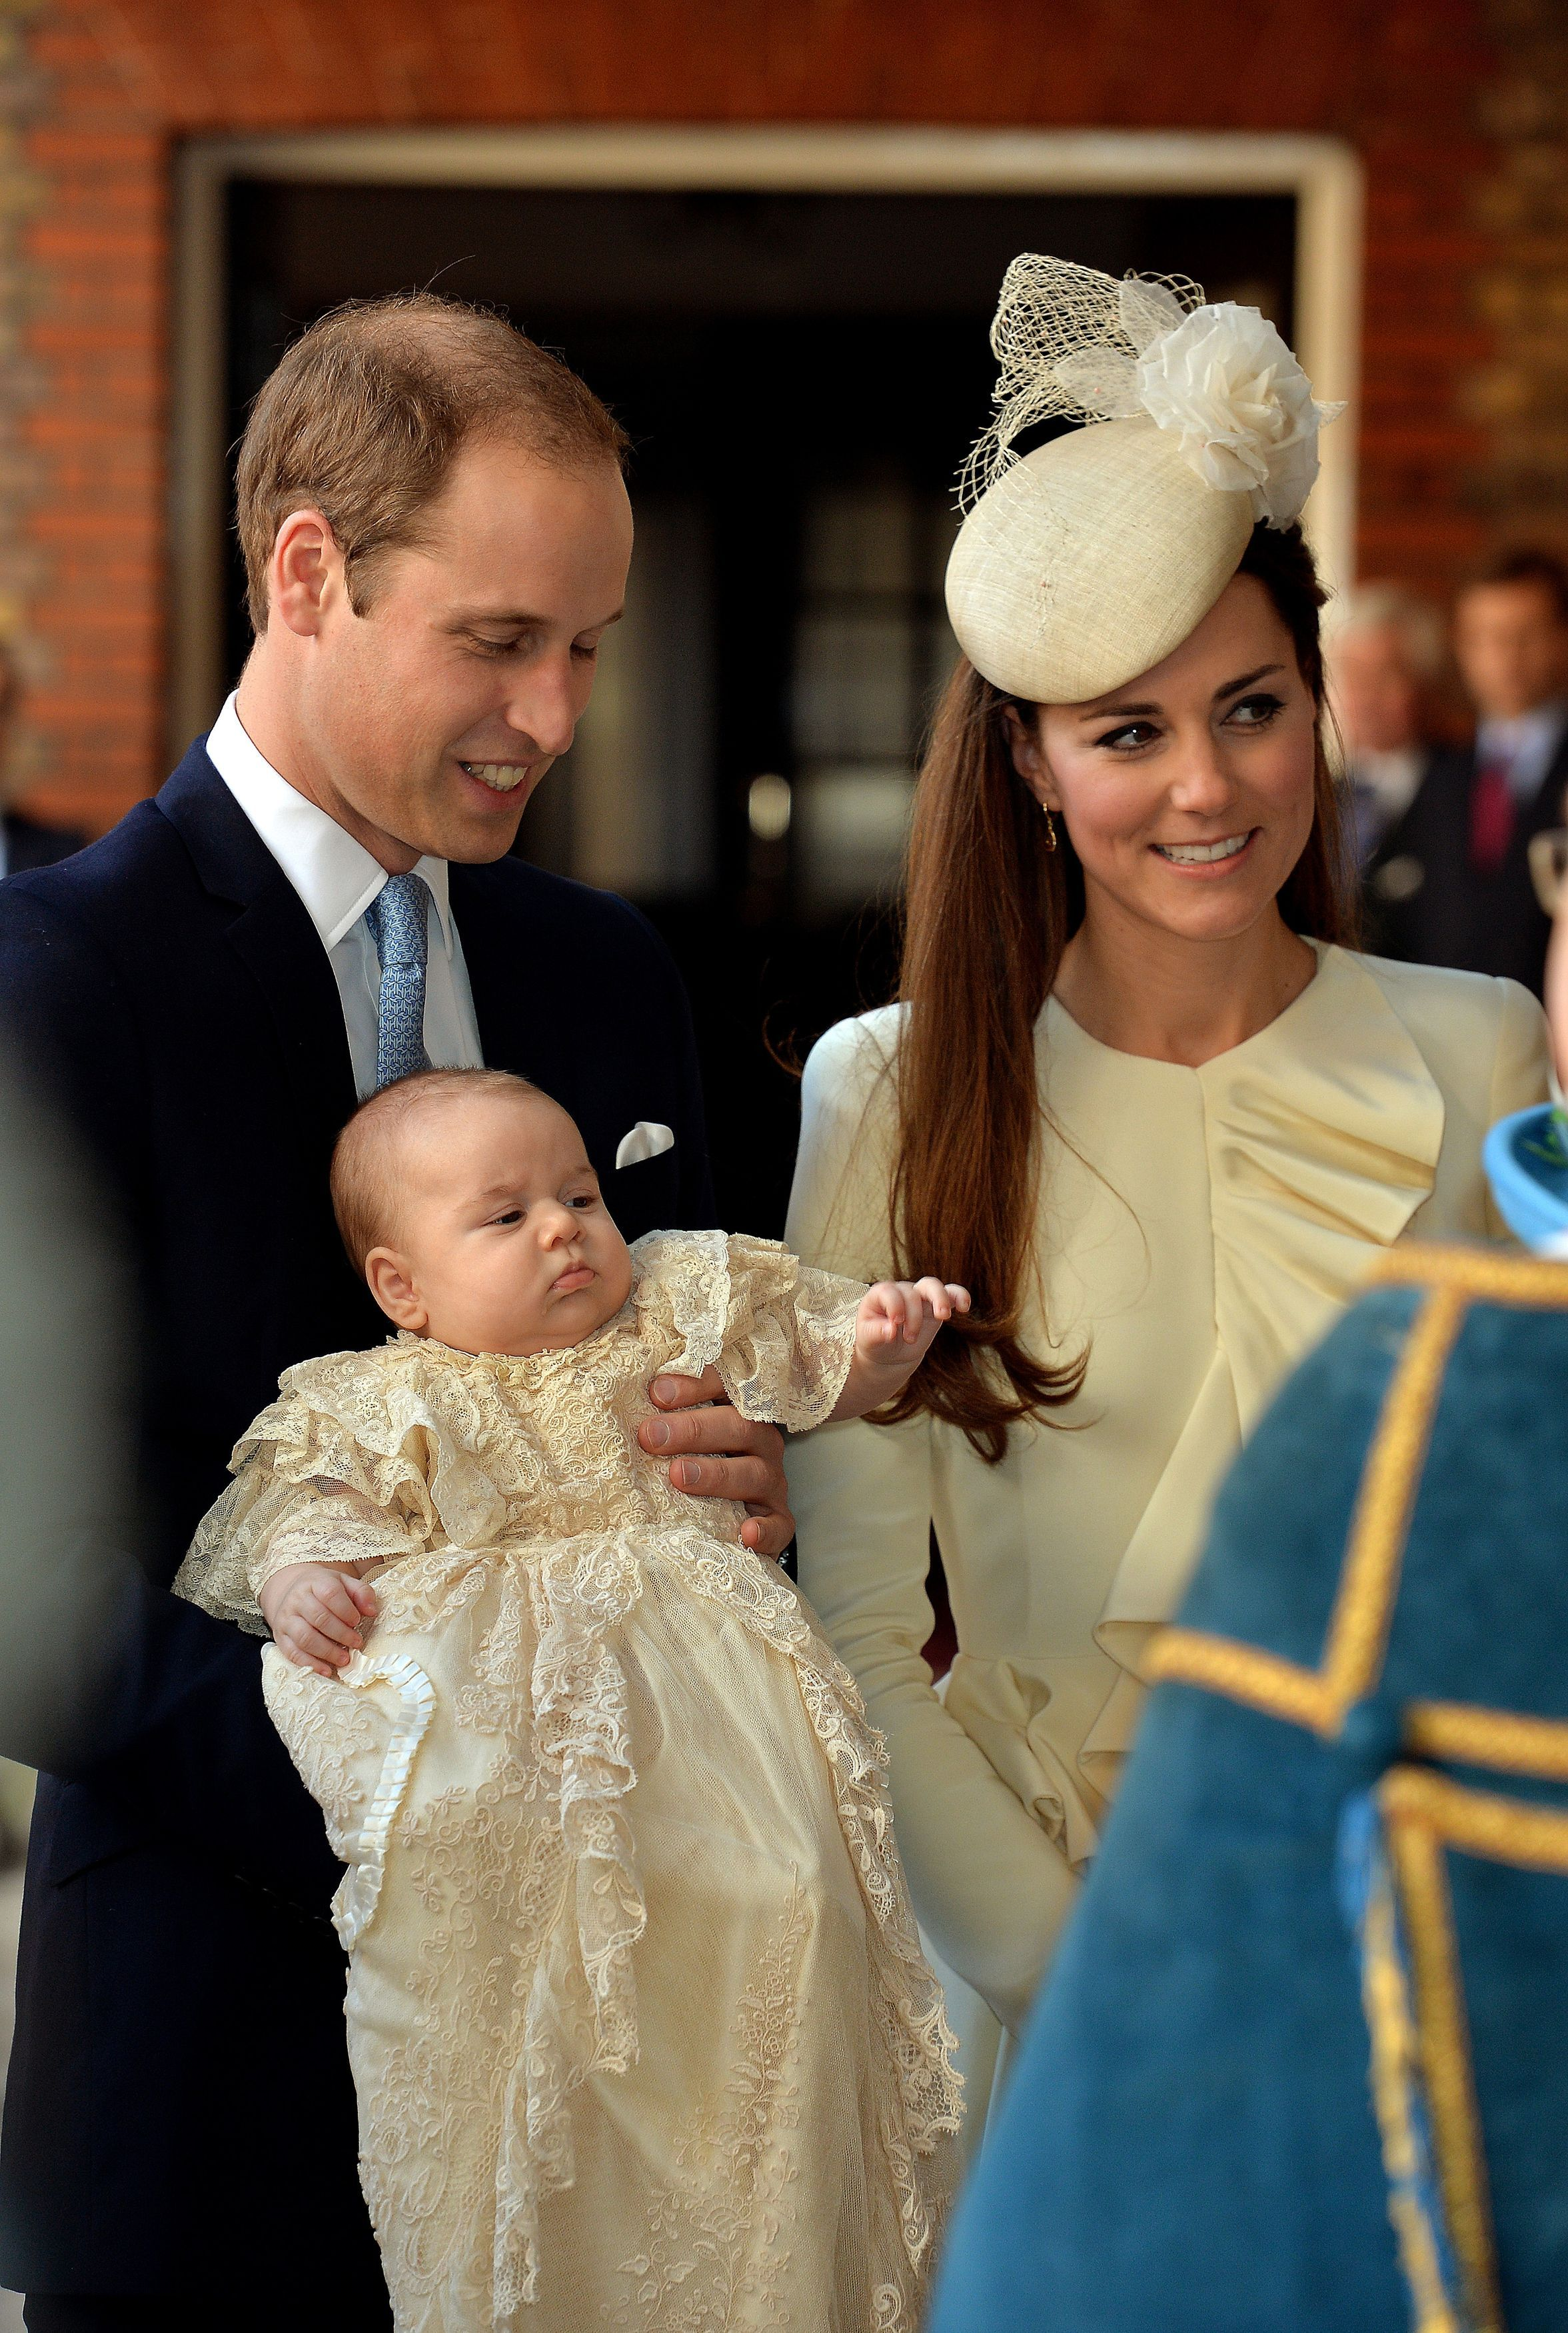 The Duke and Duchess with the baby